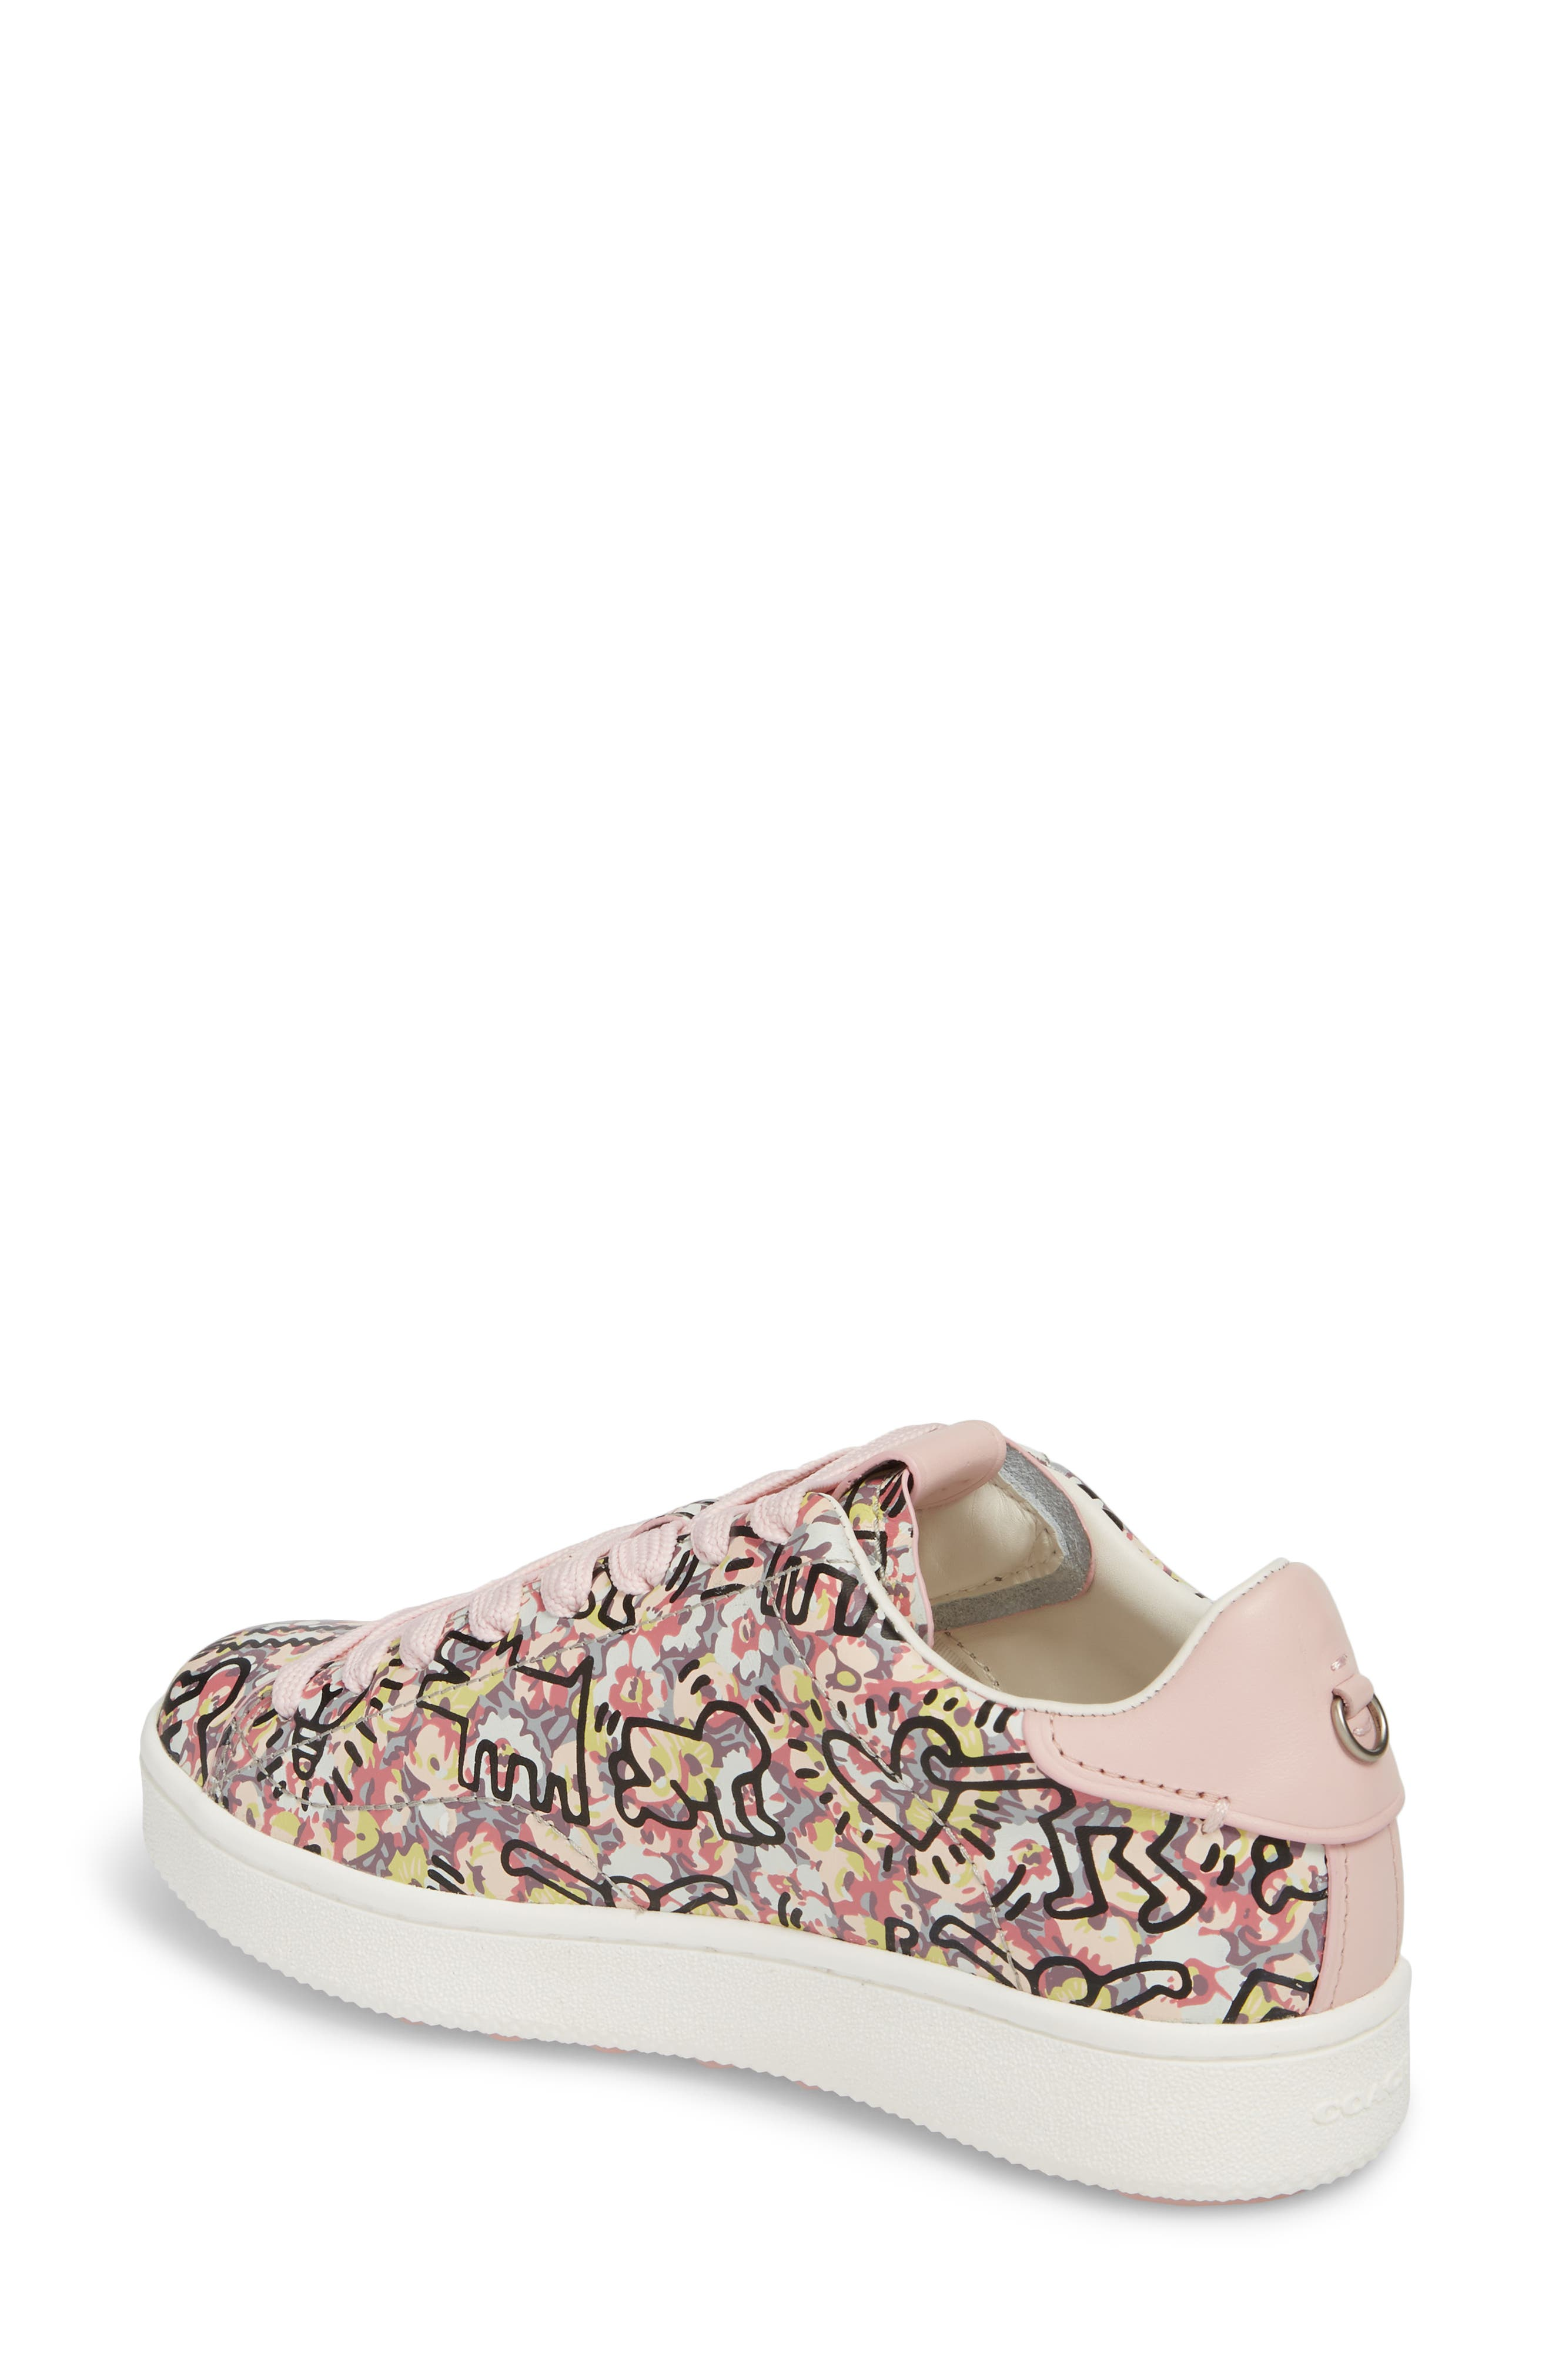 x Keith Haring Low Top Sneaker,                             Alternate thumbnail 2, color,                             674